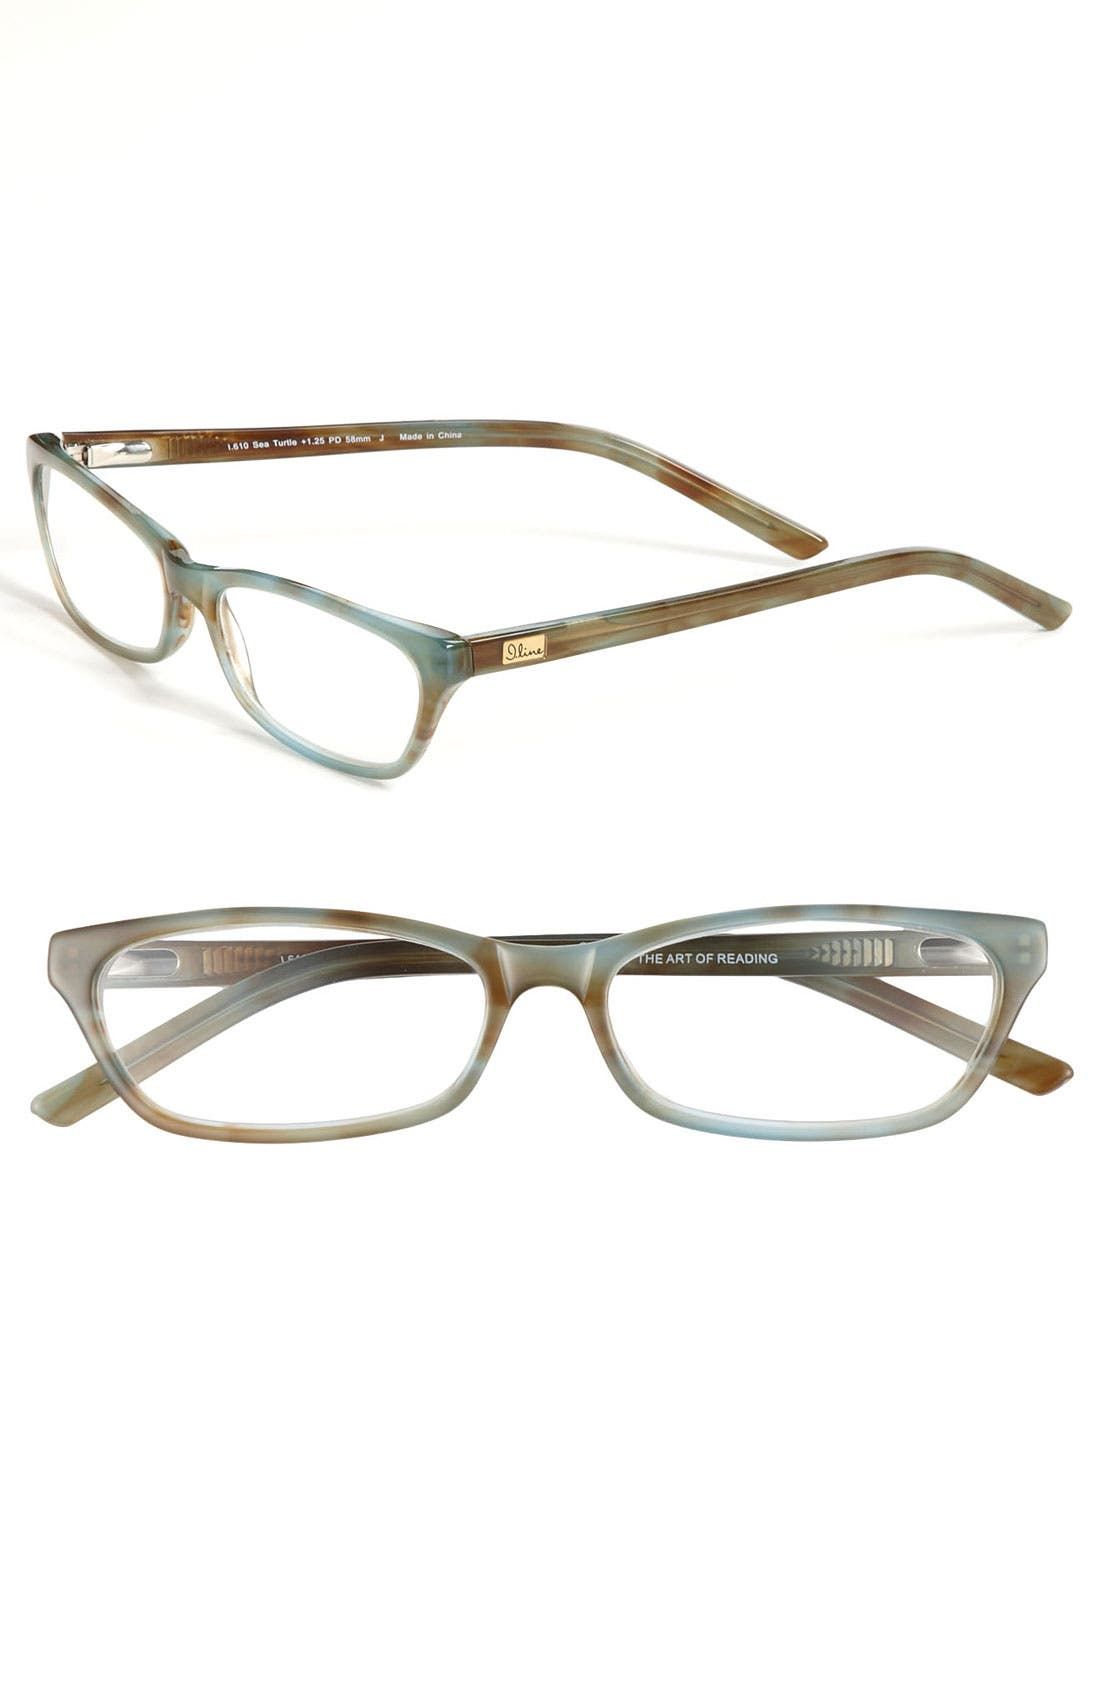 Main Image - I Line Eyewear 'Sea Turtle' 54mm Reading Glasses